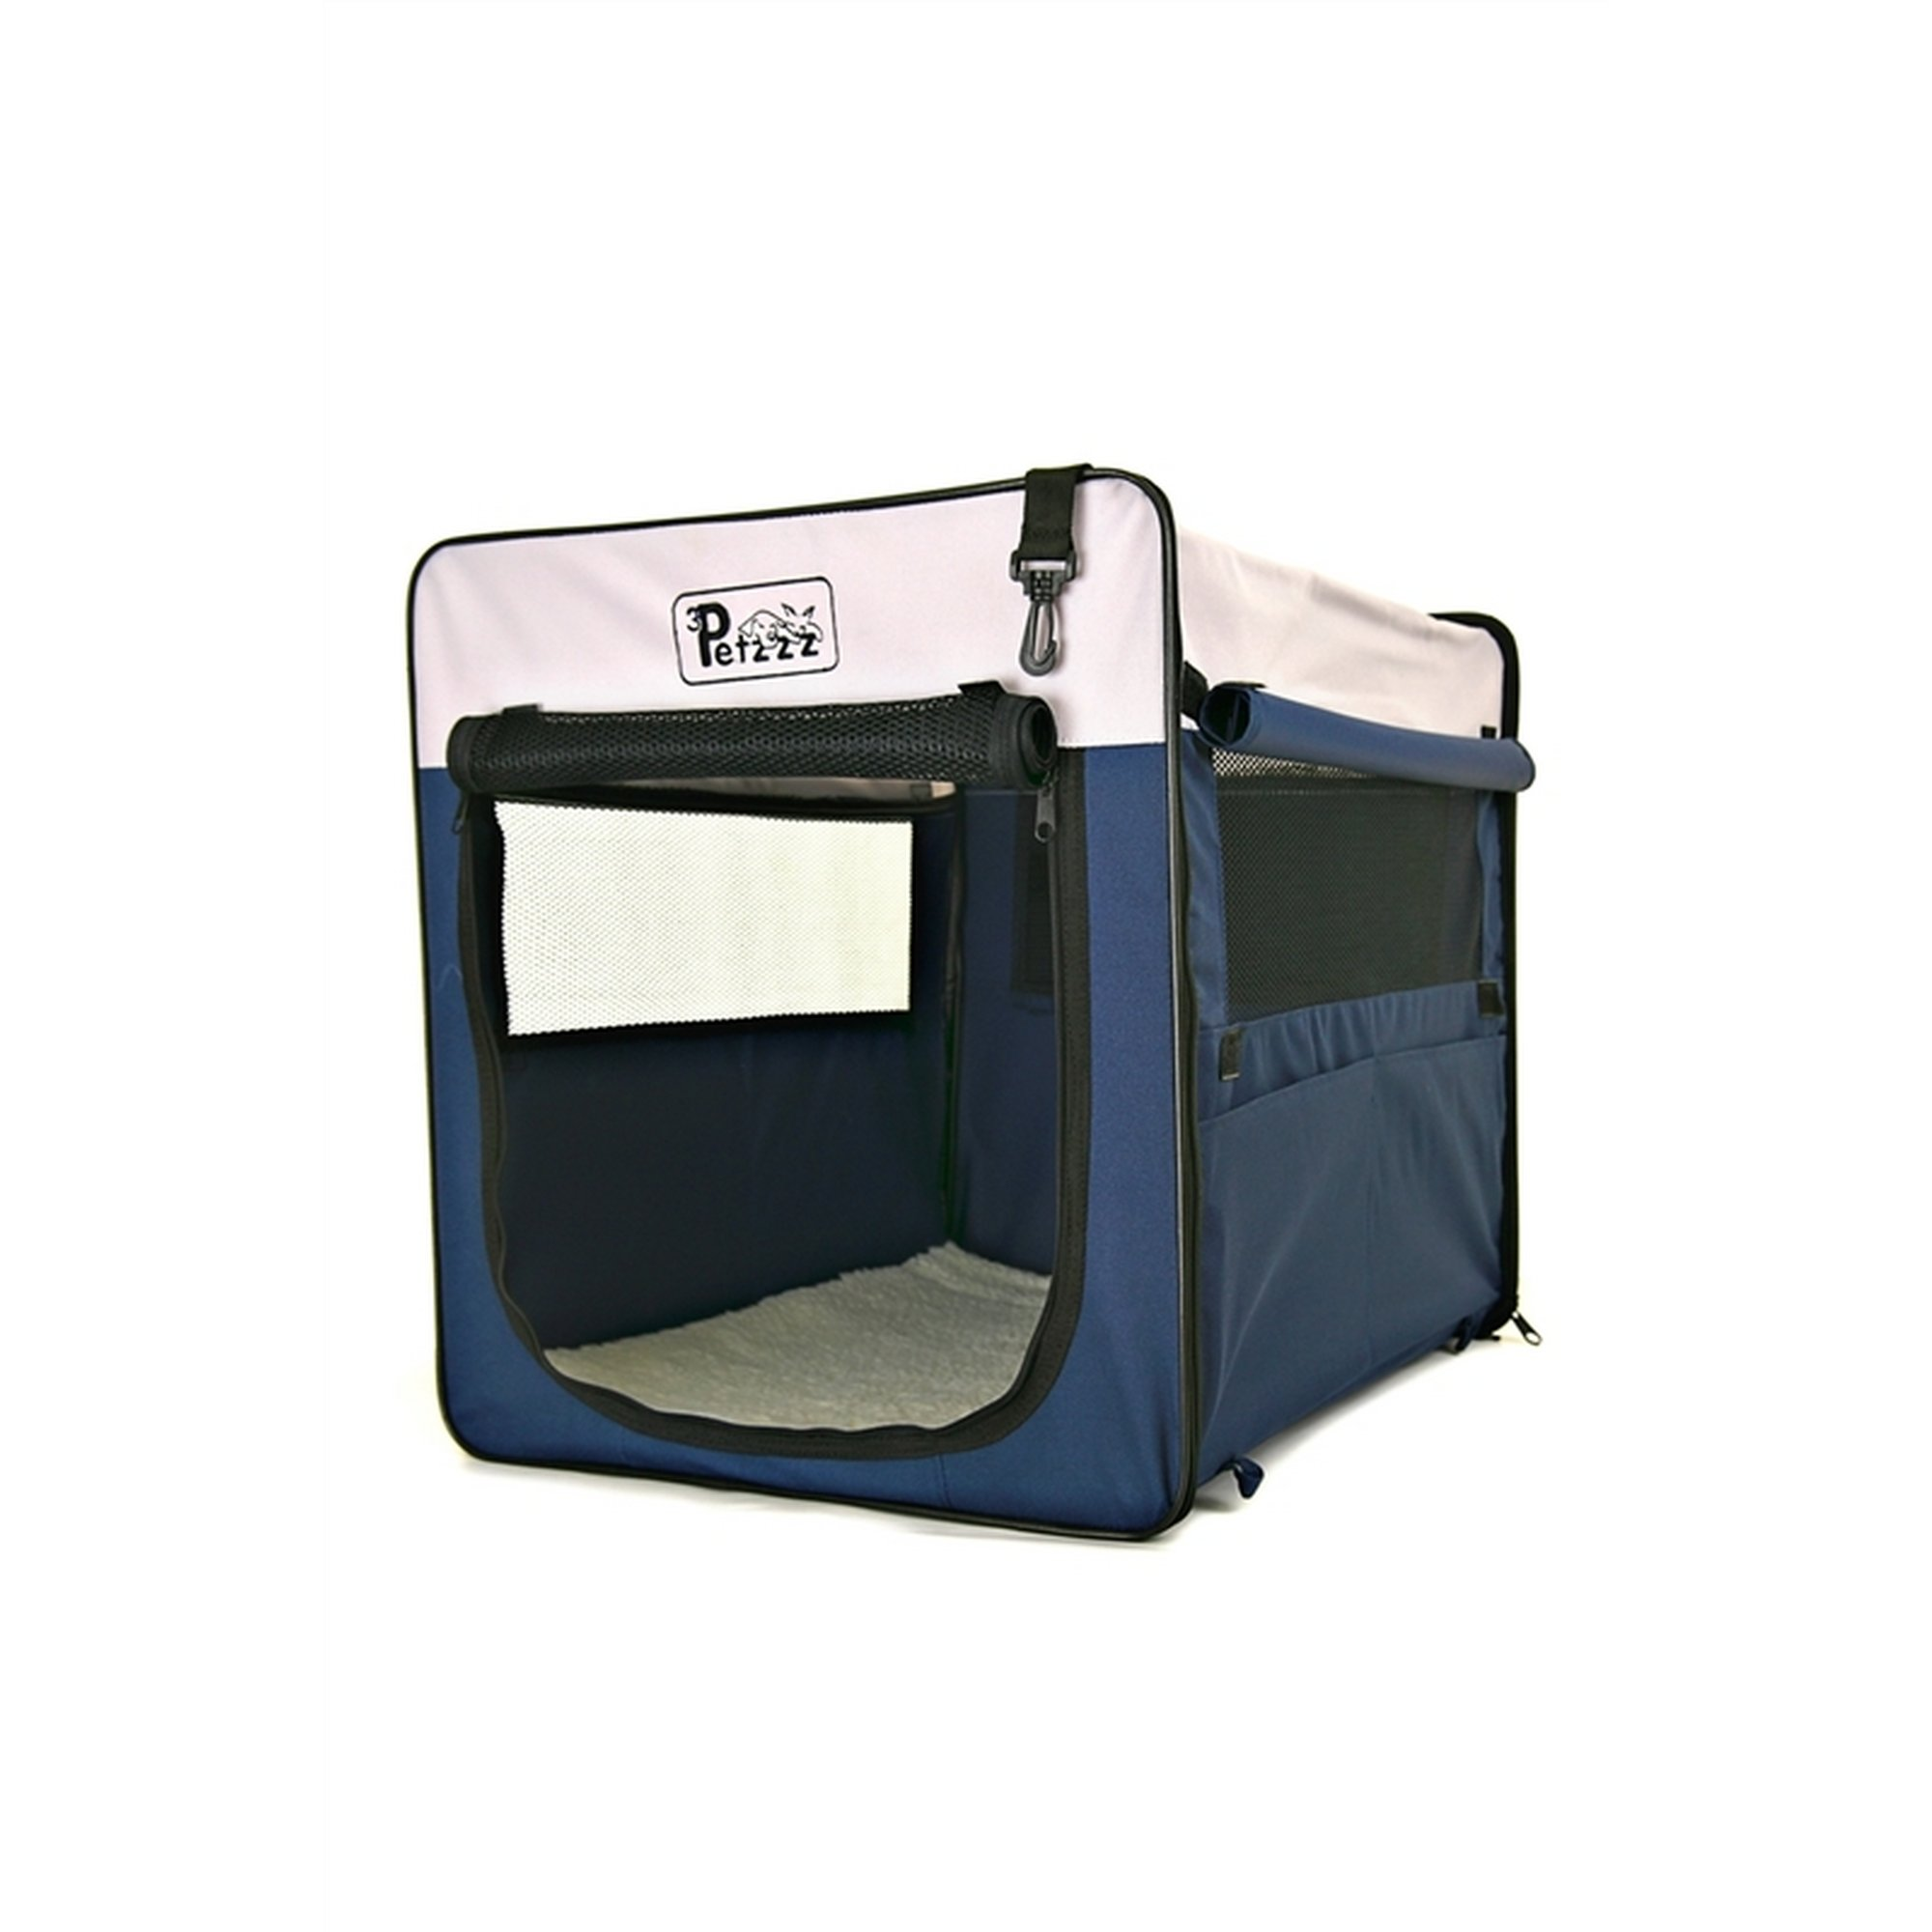 Image of Fabric Pet Crate